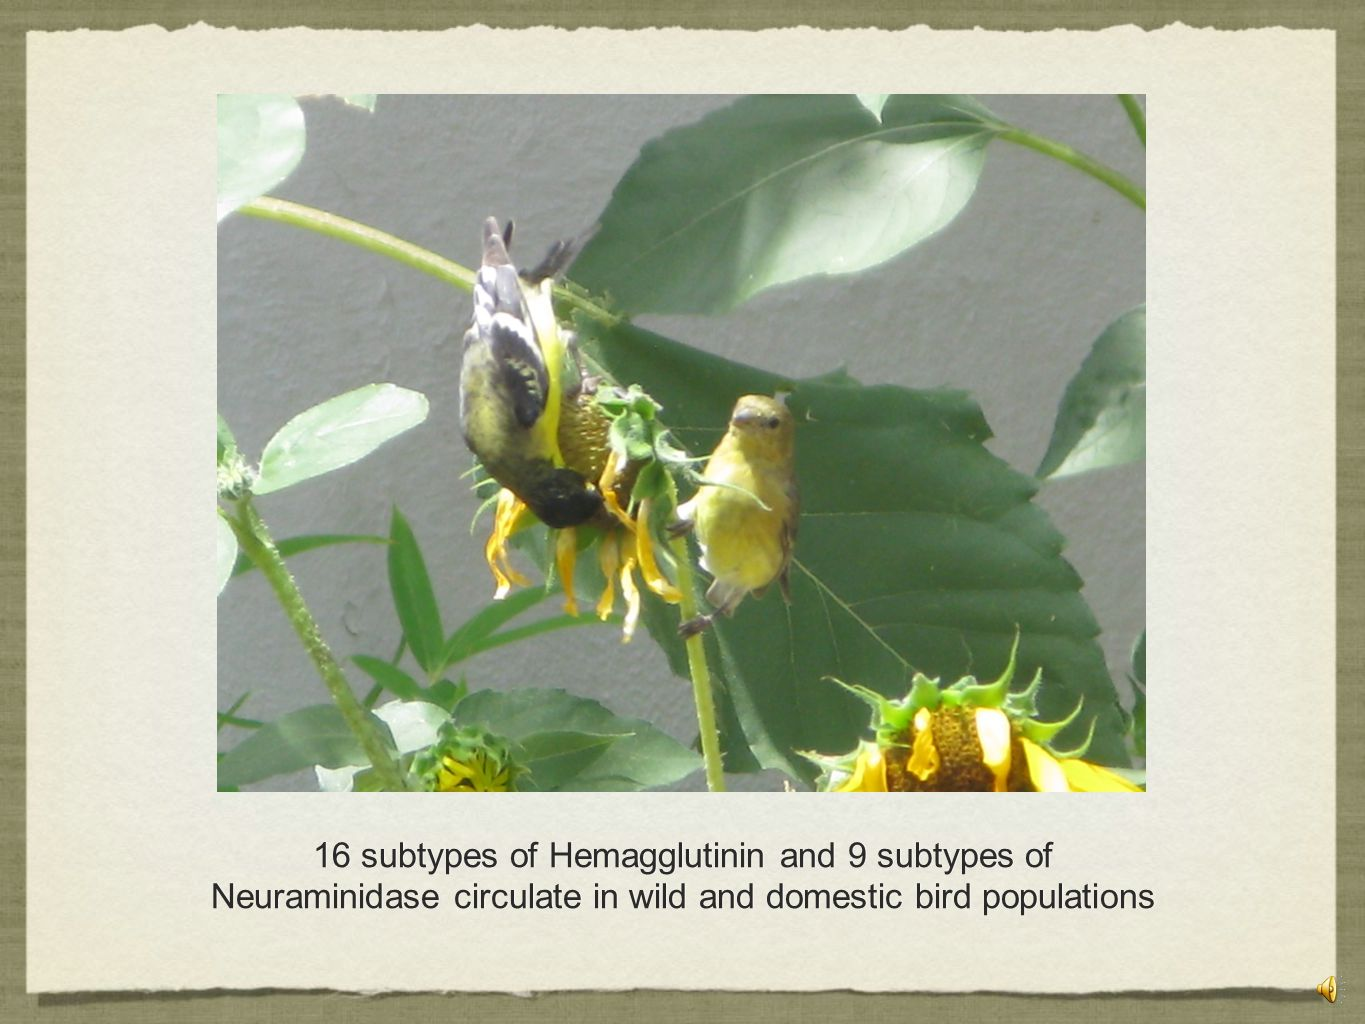 16 subtypes of Hemagglutinin and 9 subtypes of Neuraminidase circulate in wild and domestic bird populations